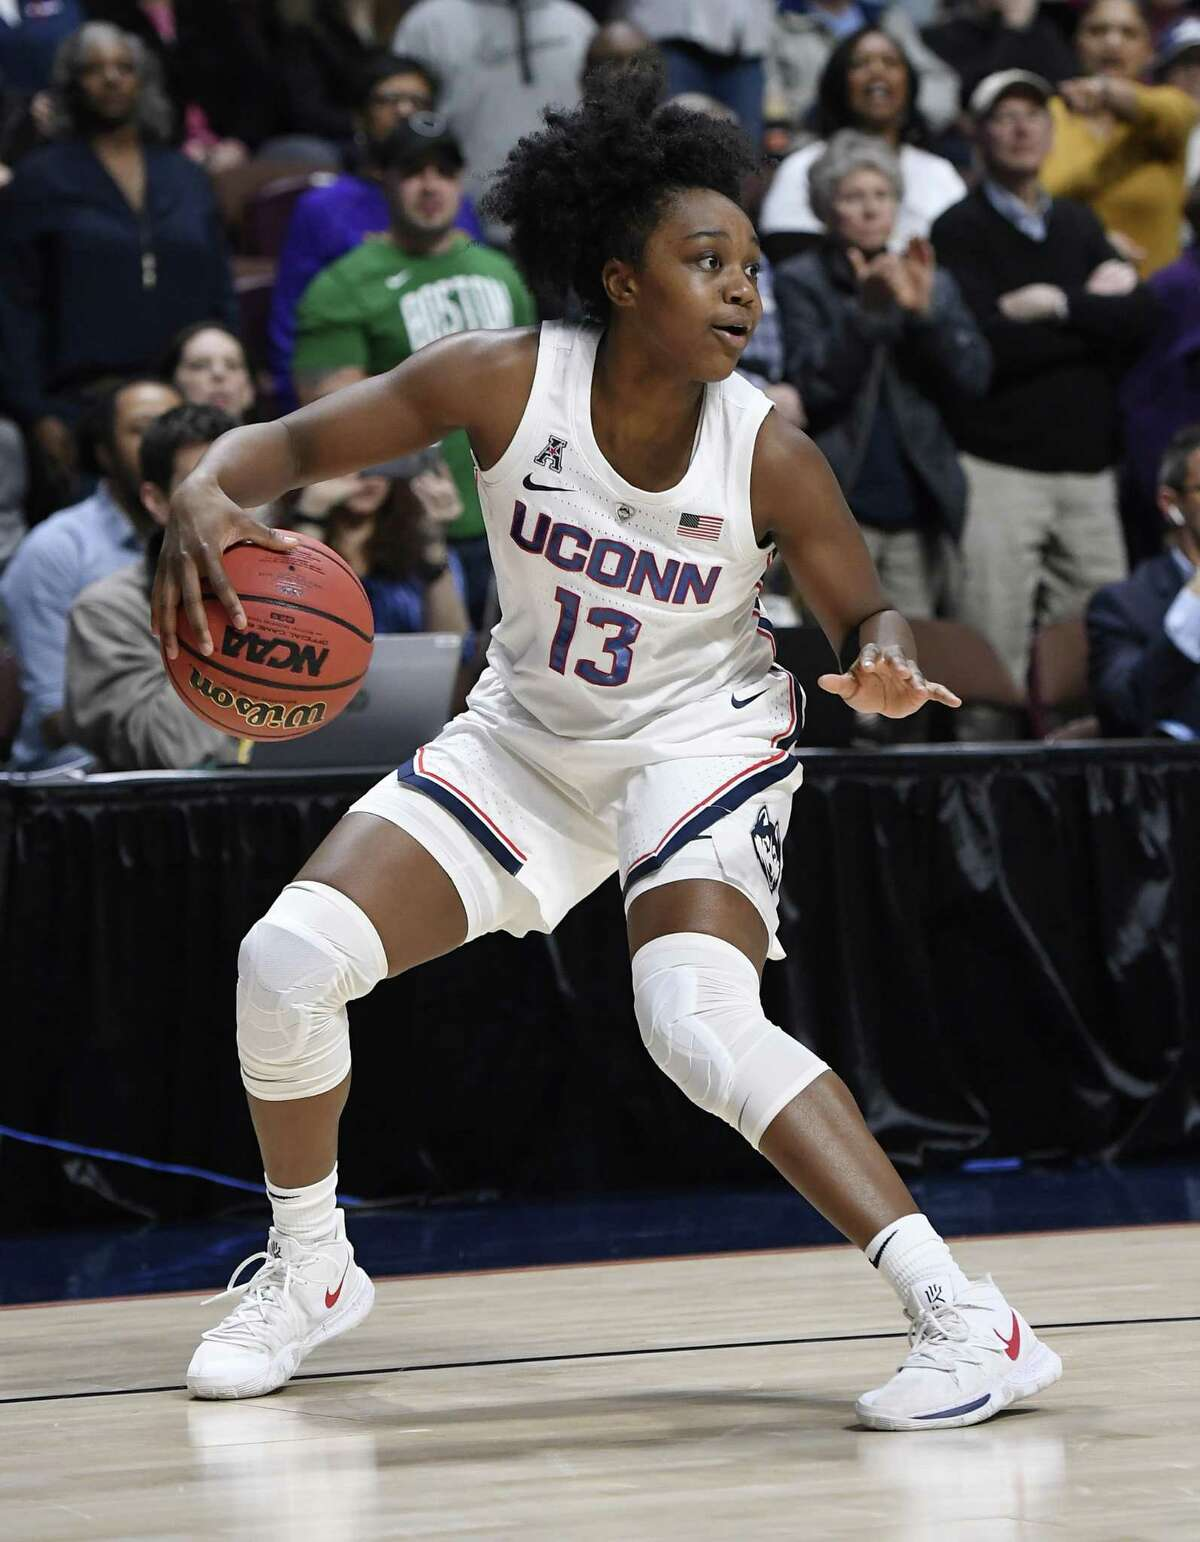 Connecticut's Christyn Williams during the first half of an NCAA college basketball game in the American Athletic Conference tournament quarterfinals, Saturday, March 9, 2019, at Mohegan Sun Arena in Uncasville, Conn. (AP Photo/Jessica Hill)